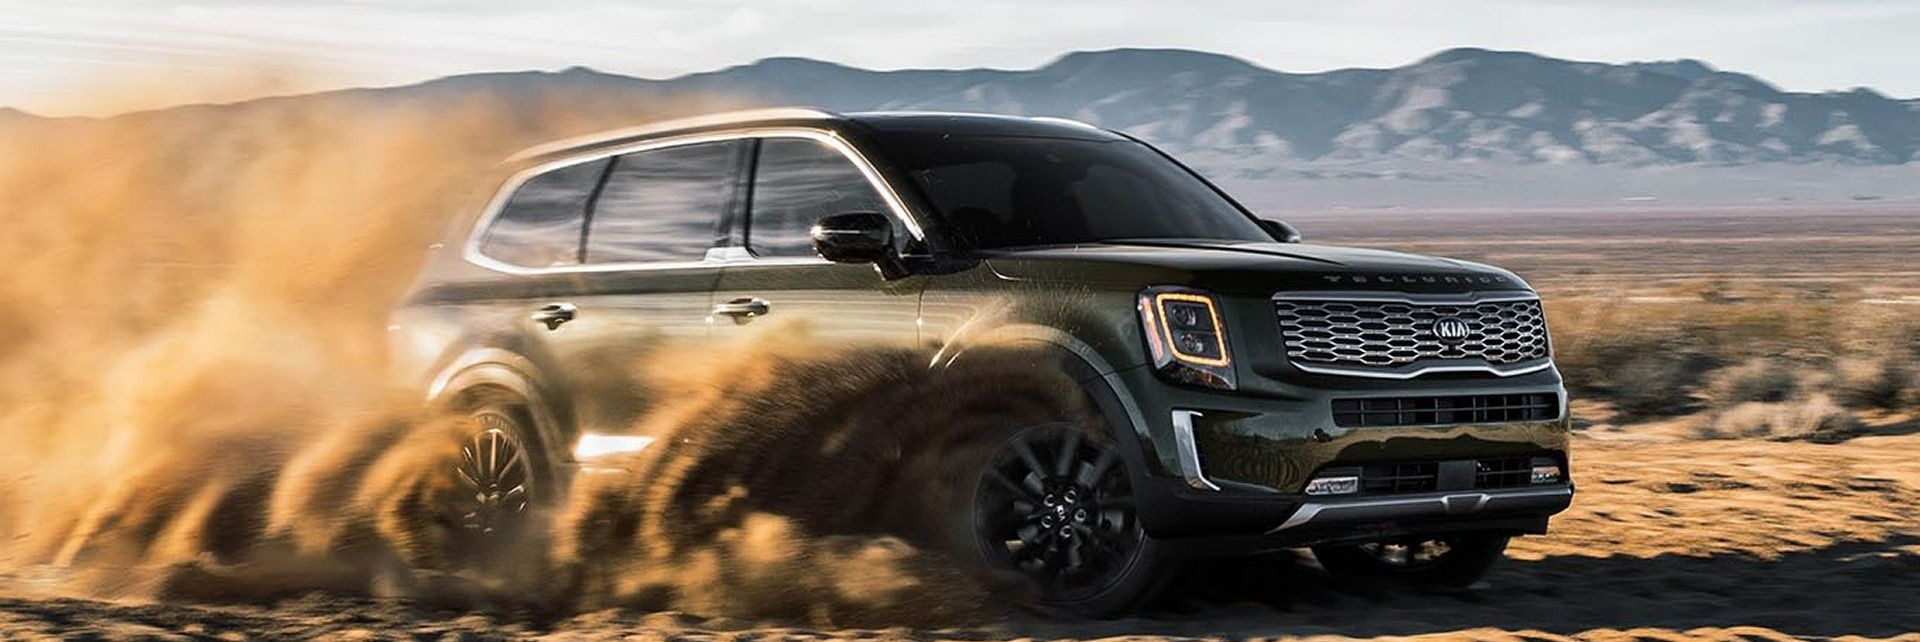 2020 Kia Telluride for Sale in North Olmsted, OH